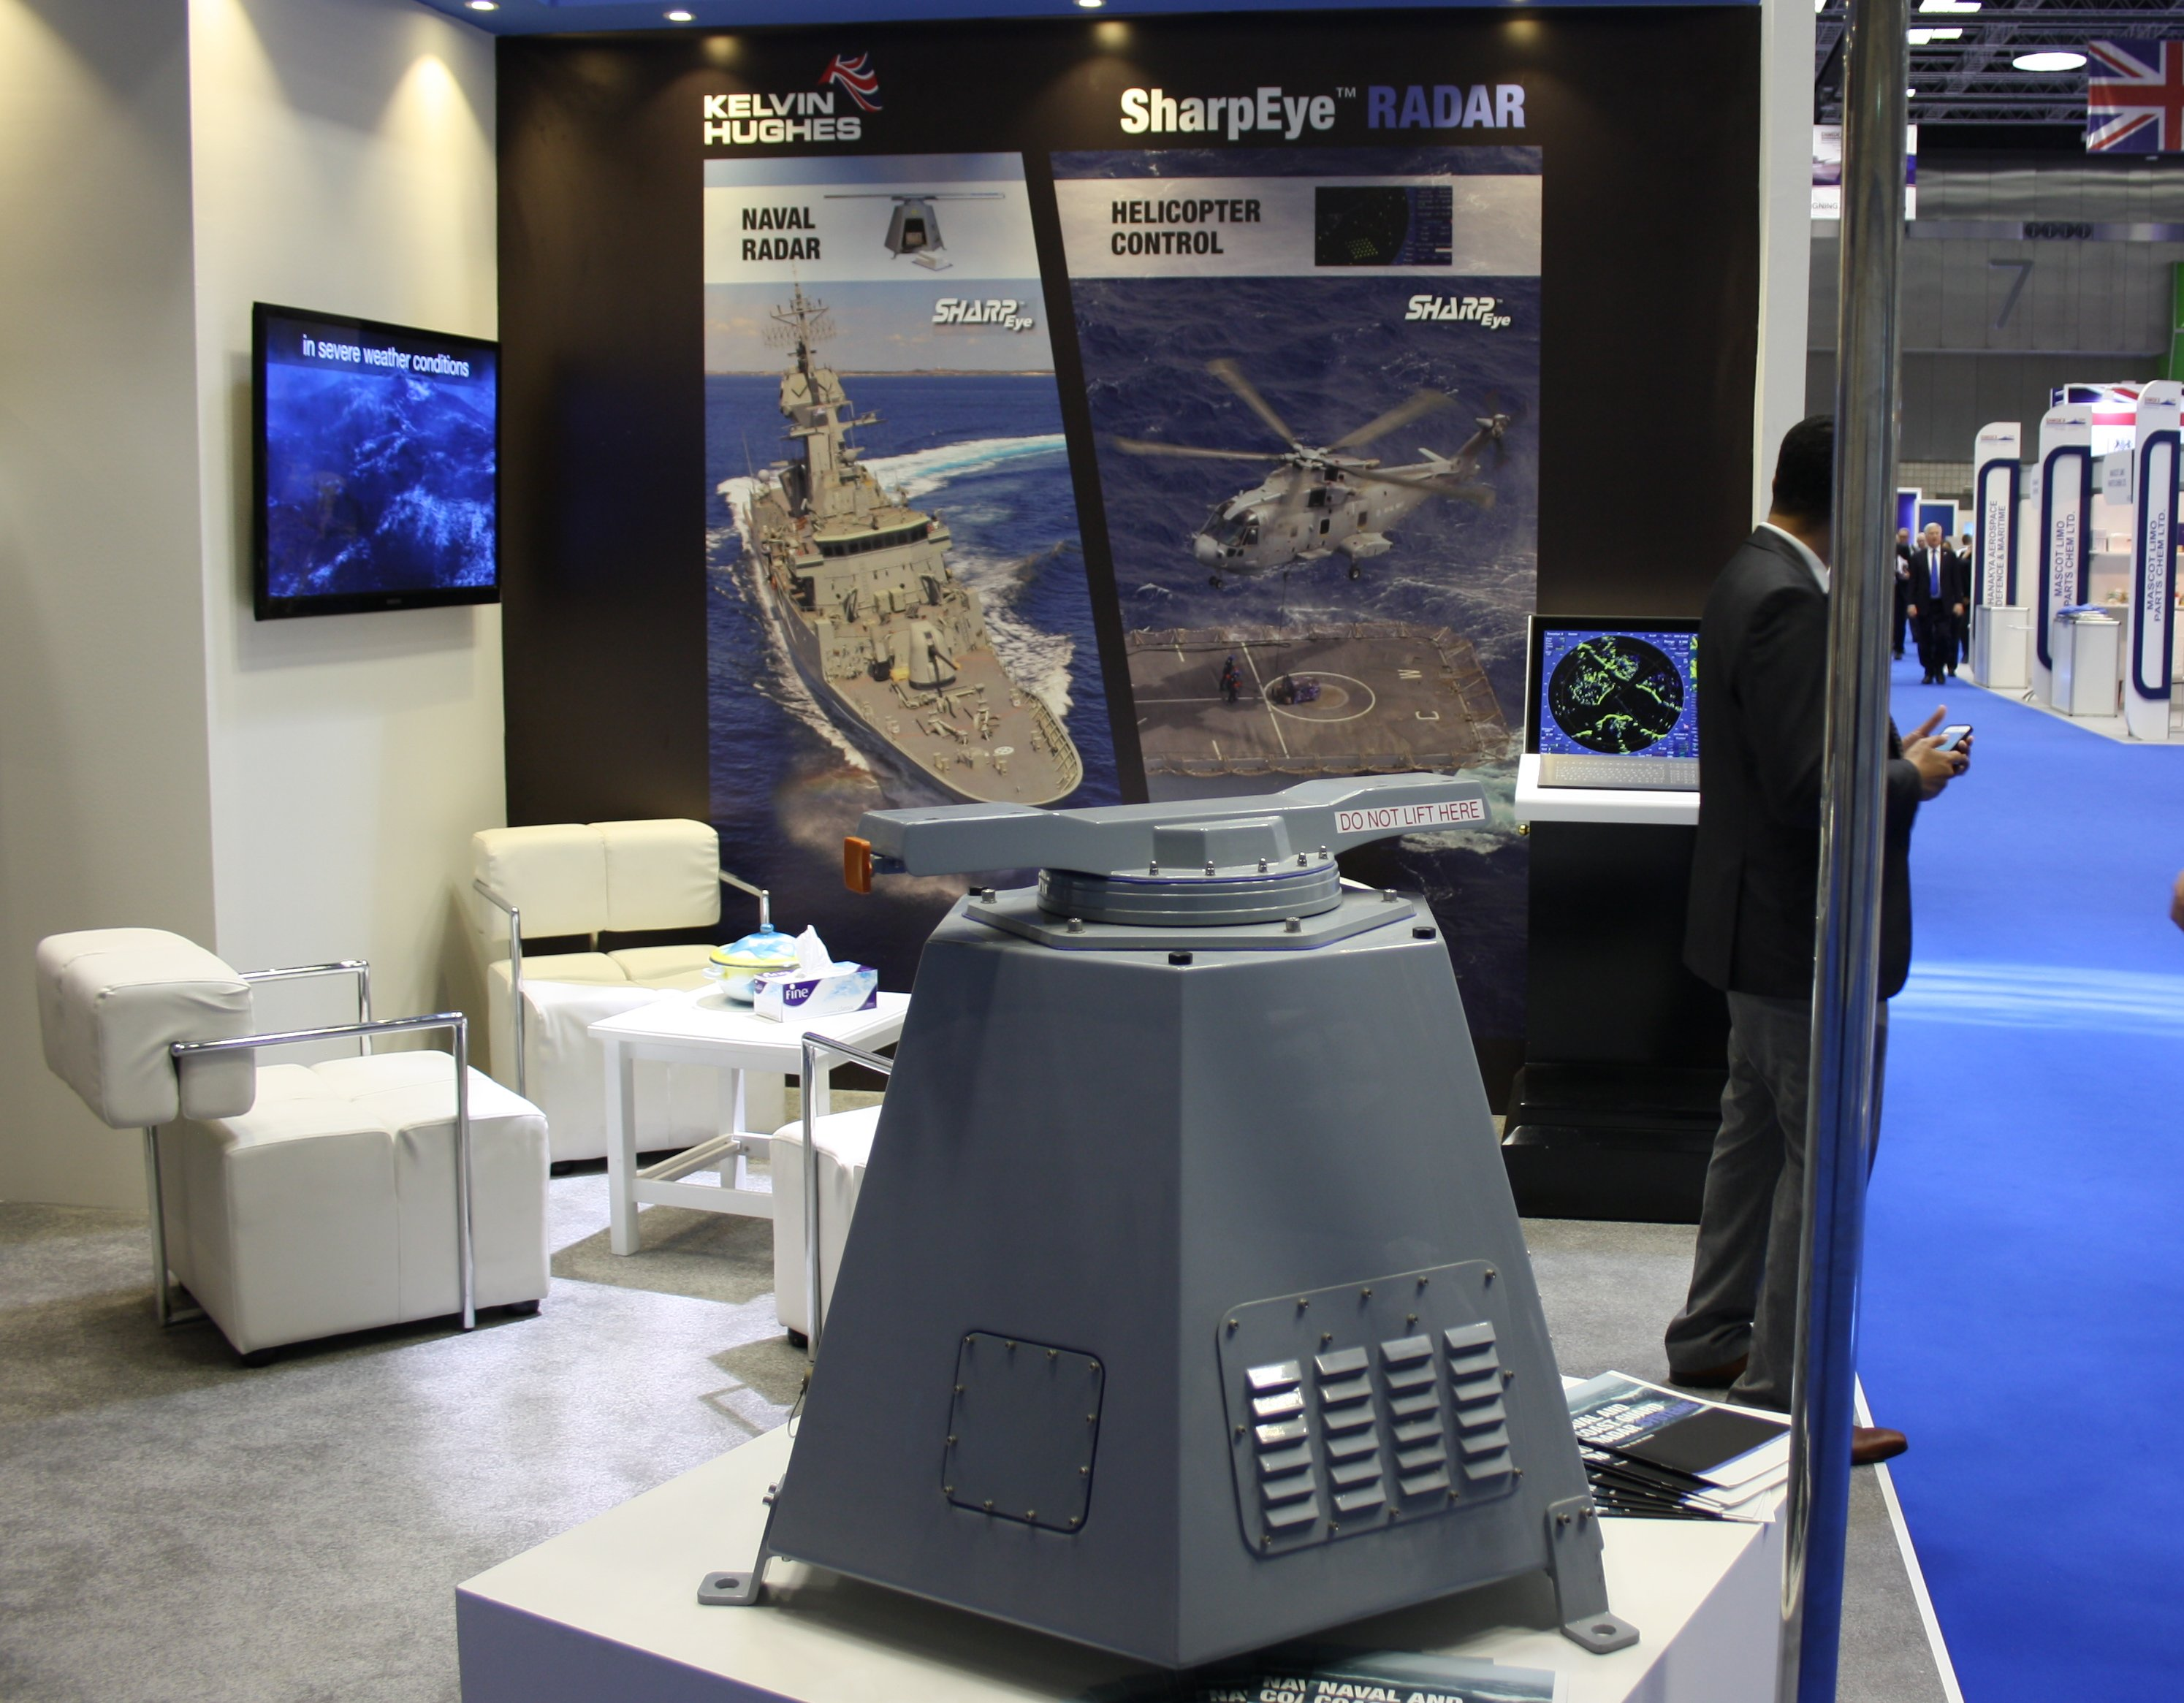 Kelvin Hughes, a world leader in the design and supply of navigation and security surveillance systems, has been contracted by Rodman Polyships to supply X and S band SharpEye™ radar systems for a range of new vessels being supplied to the Royal Oman Police Coast Guard (ROPCG).